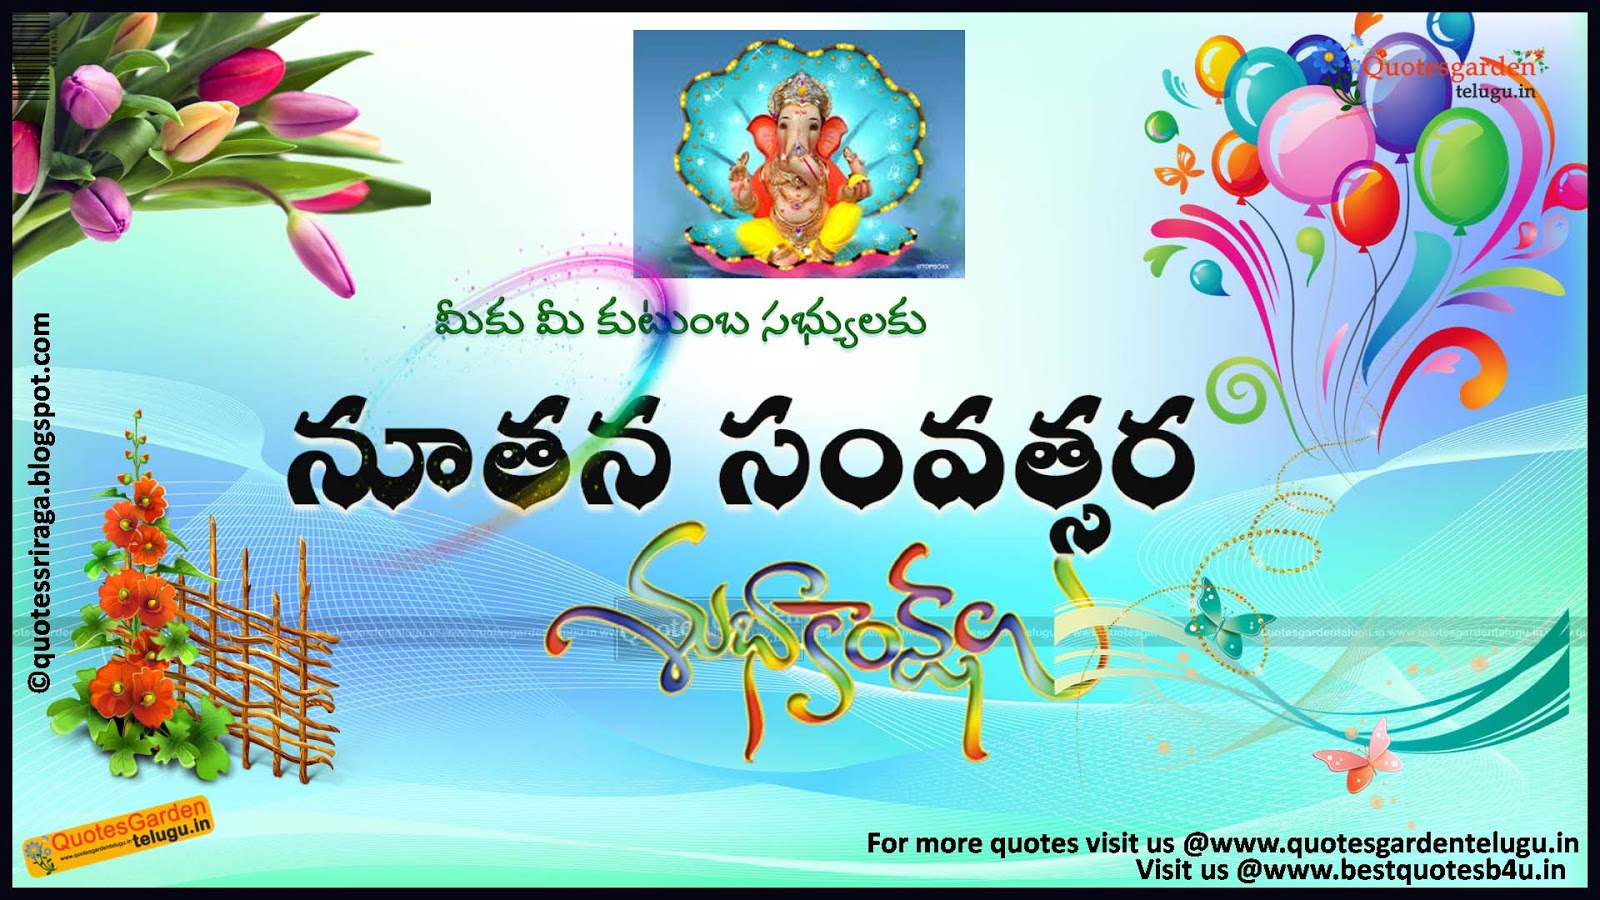 Happy new year 2016 telugu Greetings wallpapers | QUOTES GARDEN ...